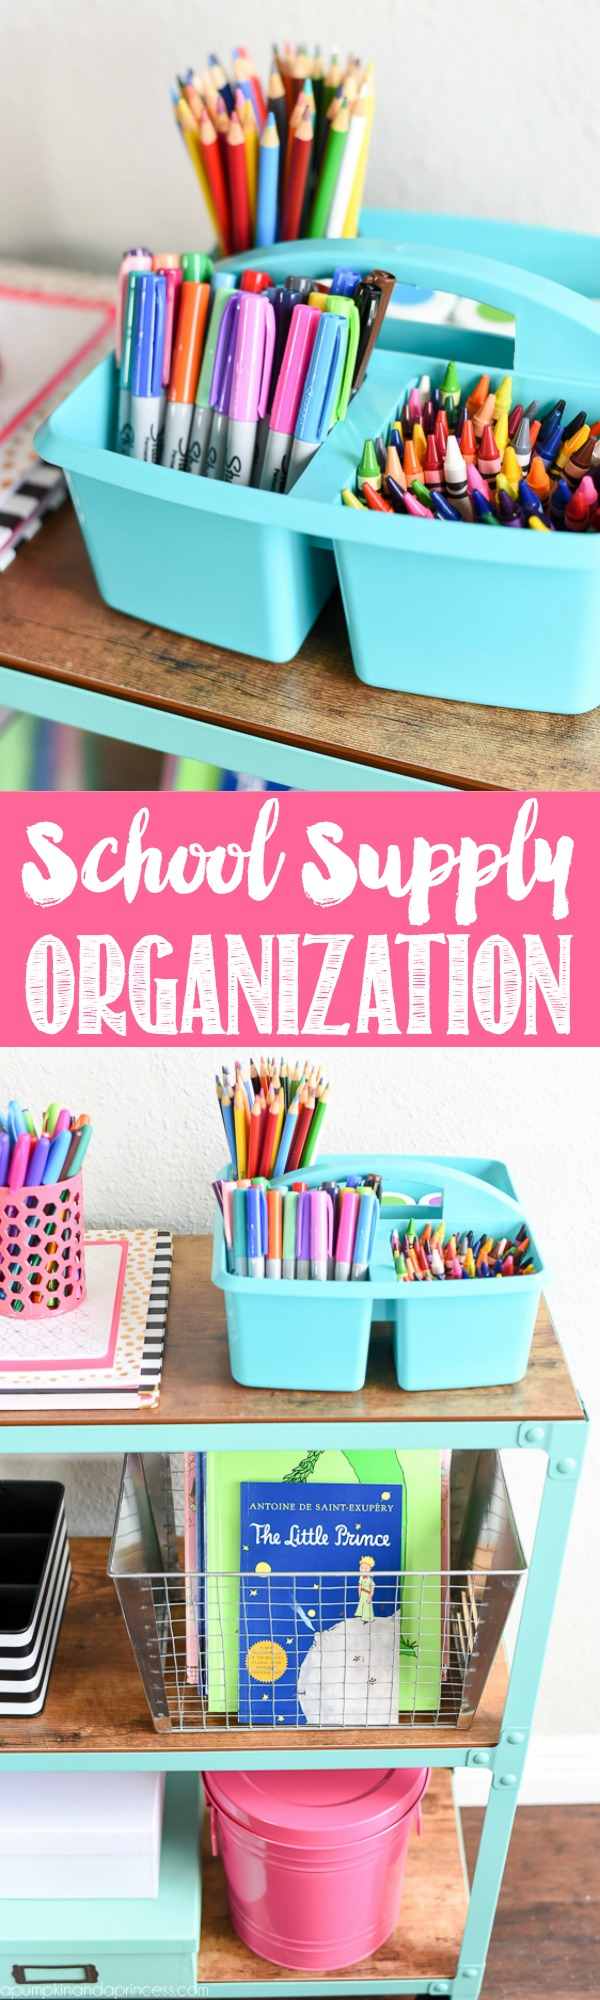 School Supply Organization Cart - easy organization ideas for art and school supplies